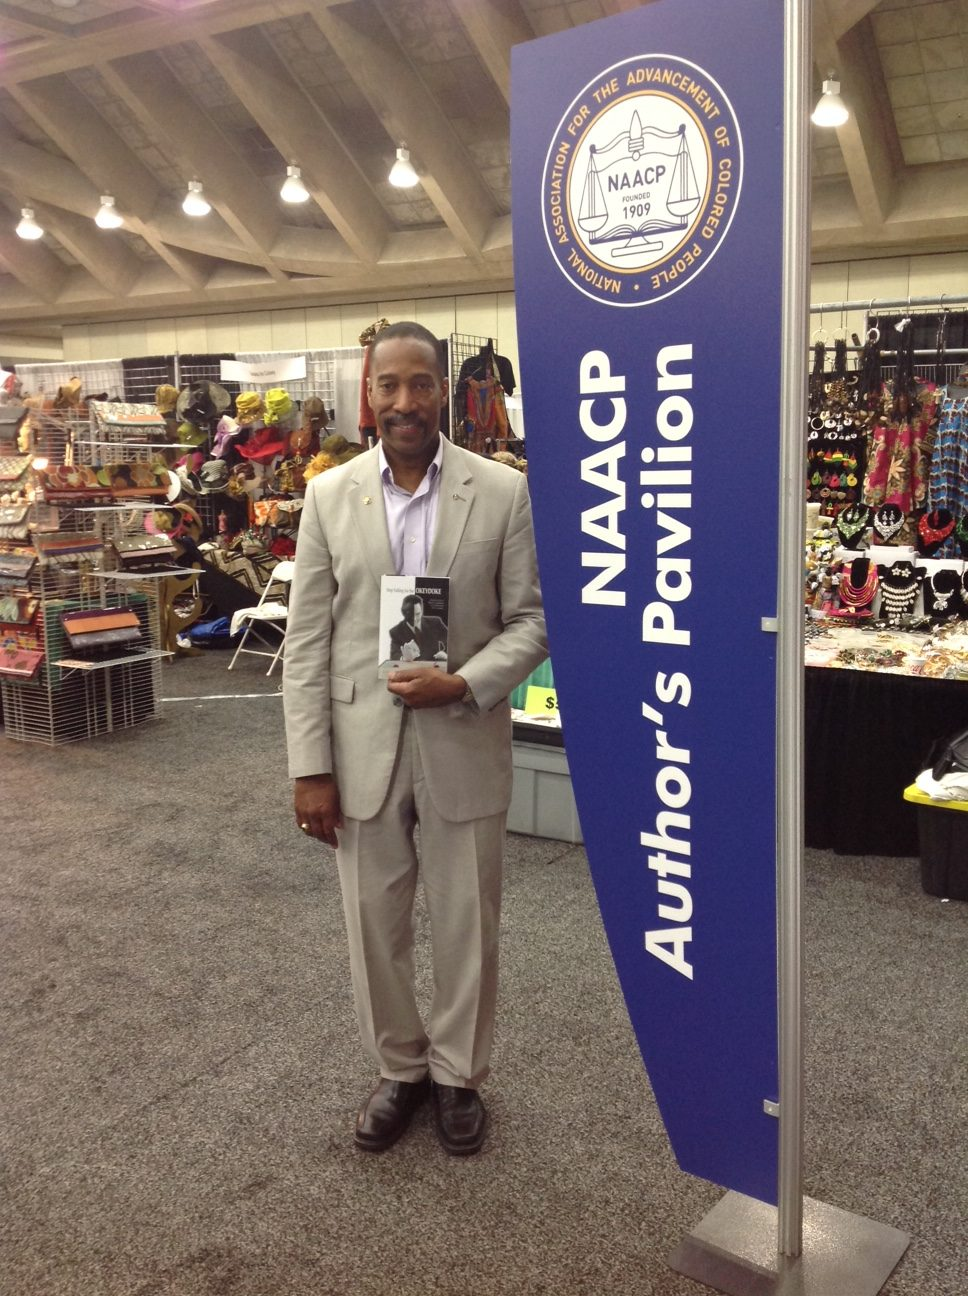 NAACP Author Pavilion 2017 National Convention